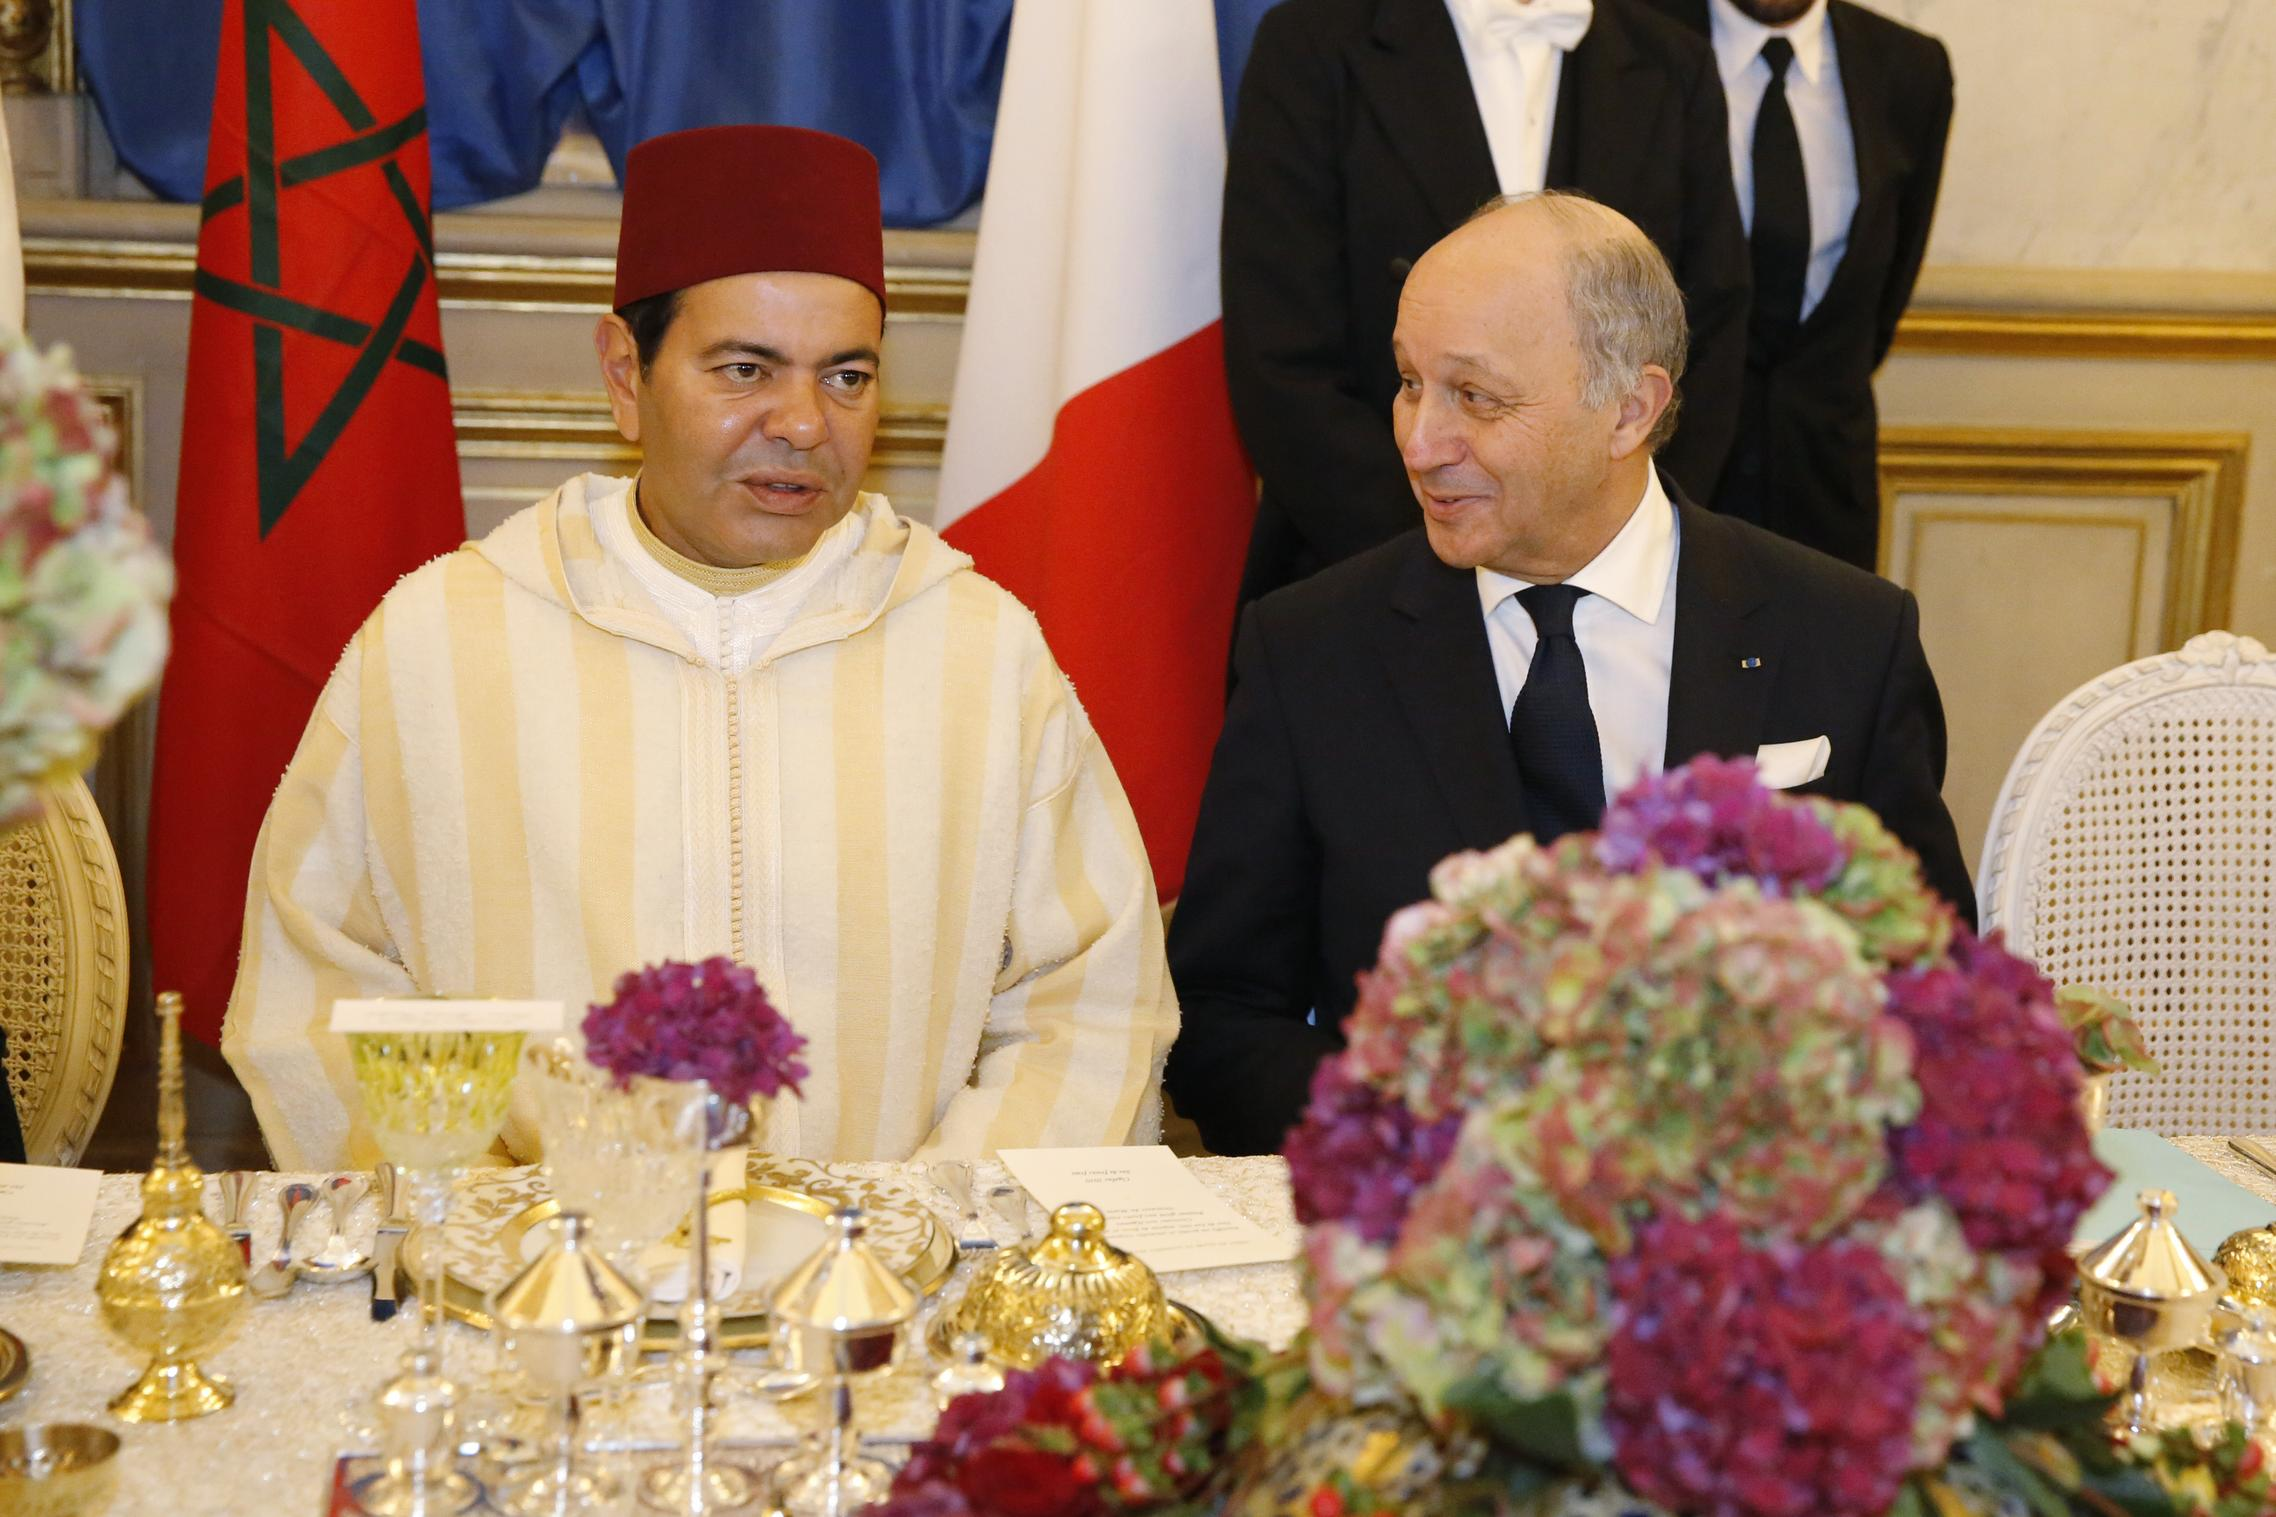 State dinner held in Paris on Nov. 10 by French Foreign Minister Laurent Fabius for visiting Moroccan Prince Moulay Rachid. PHOTO: Frédéric de La Mure, French Ministry of Foreign Affairs and International Development.